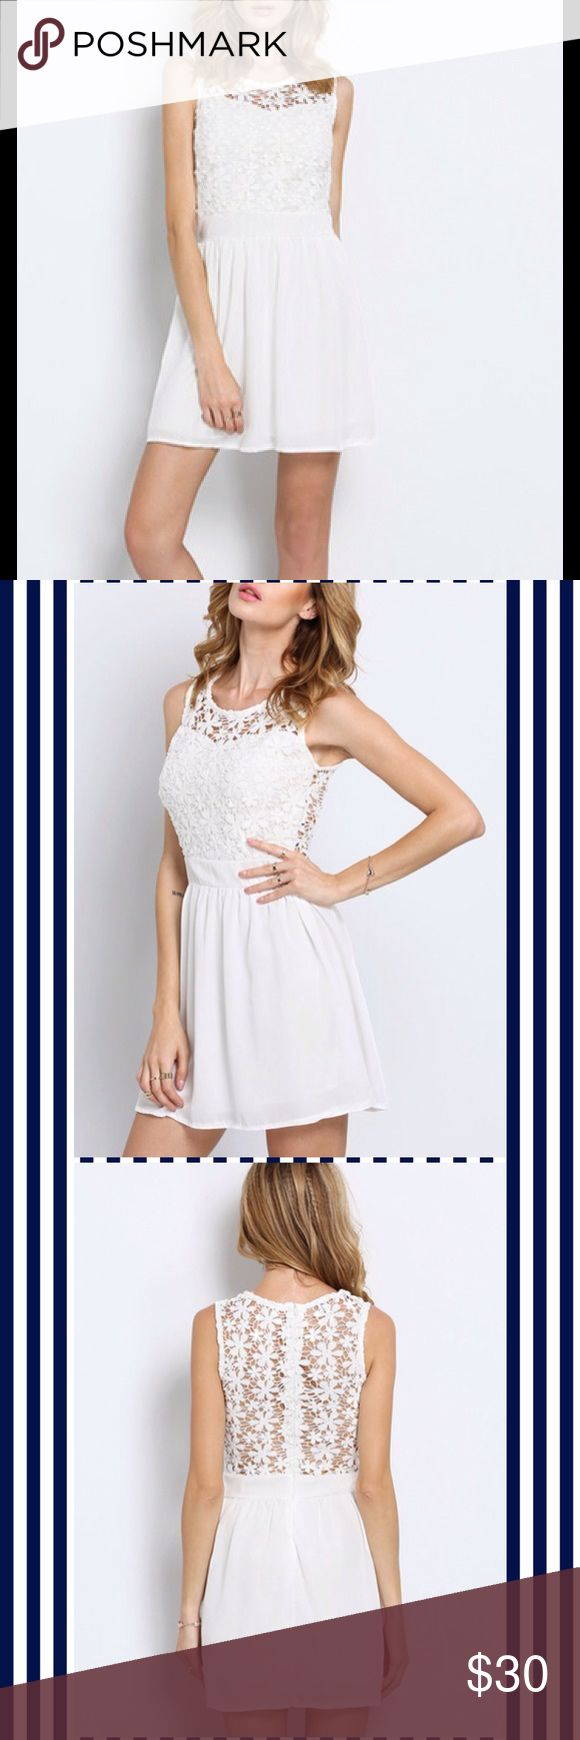 best my posh closet images on pinterest baby rompers couple